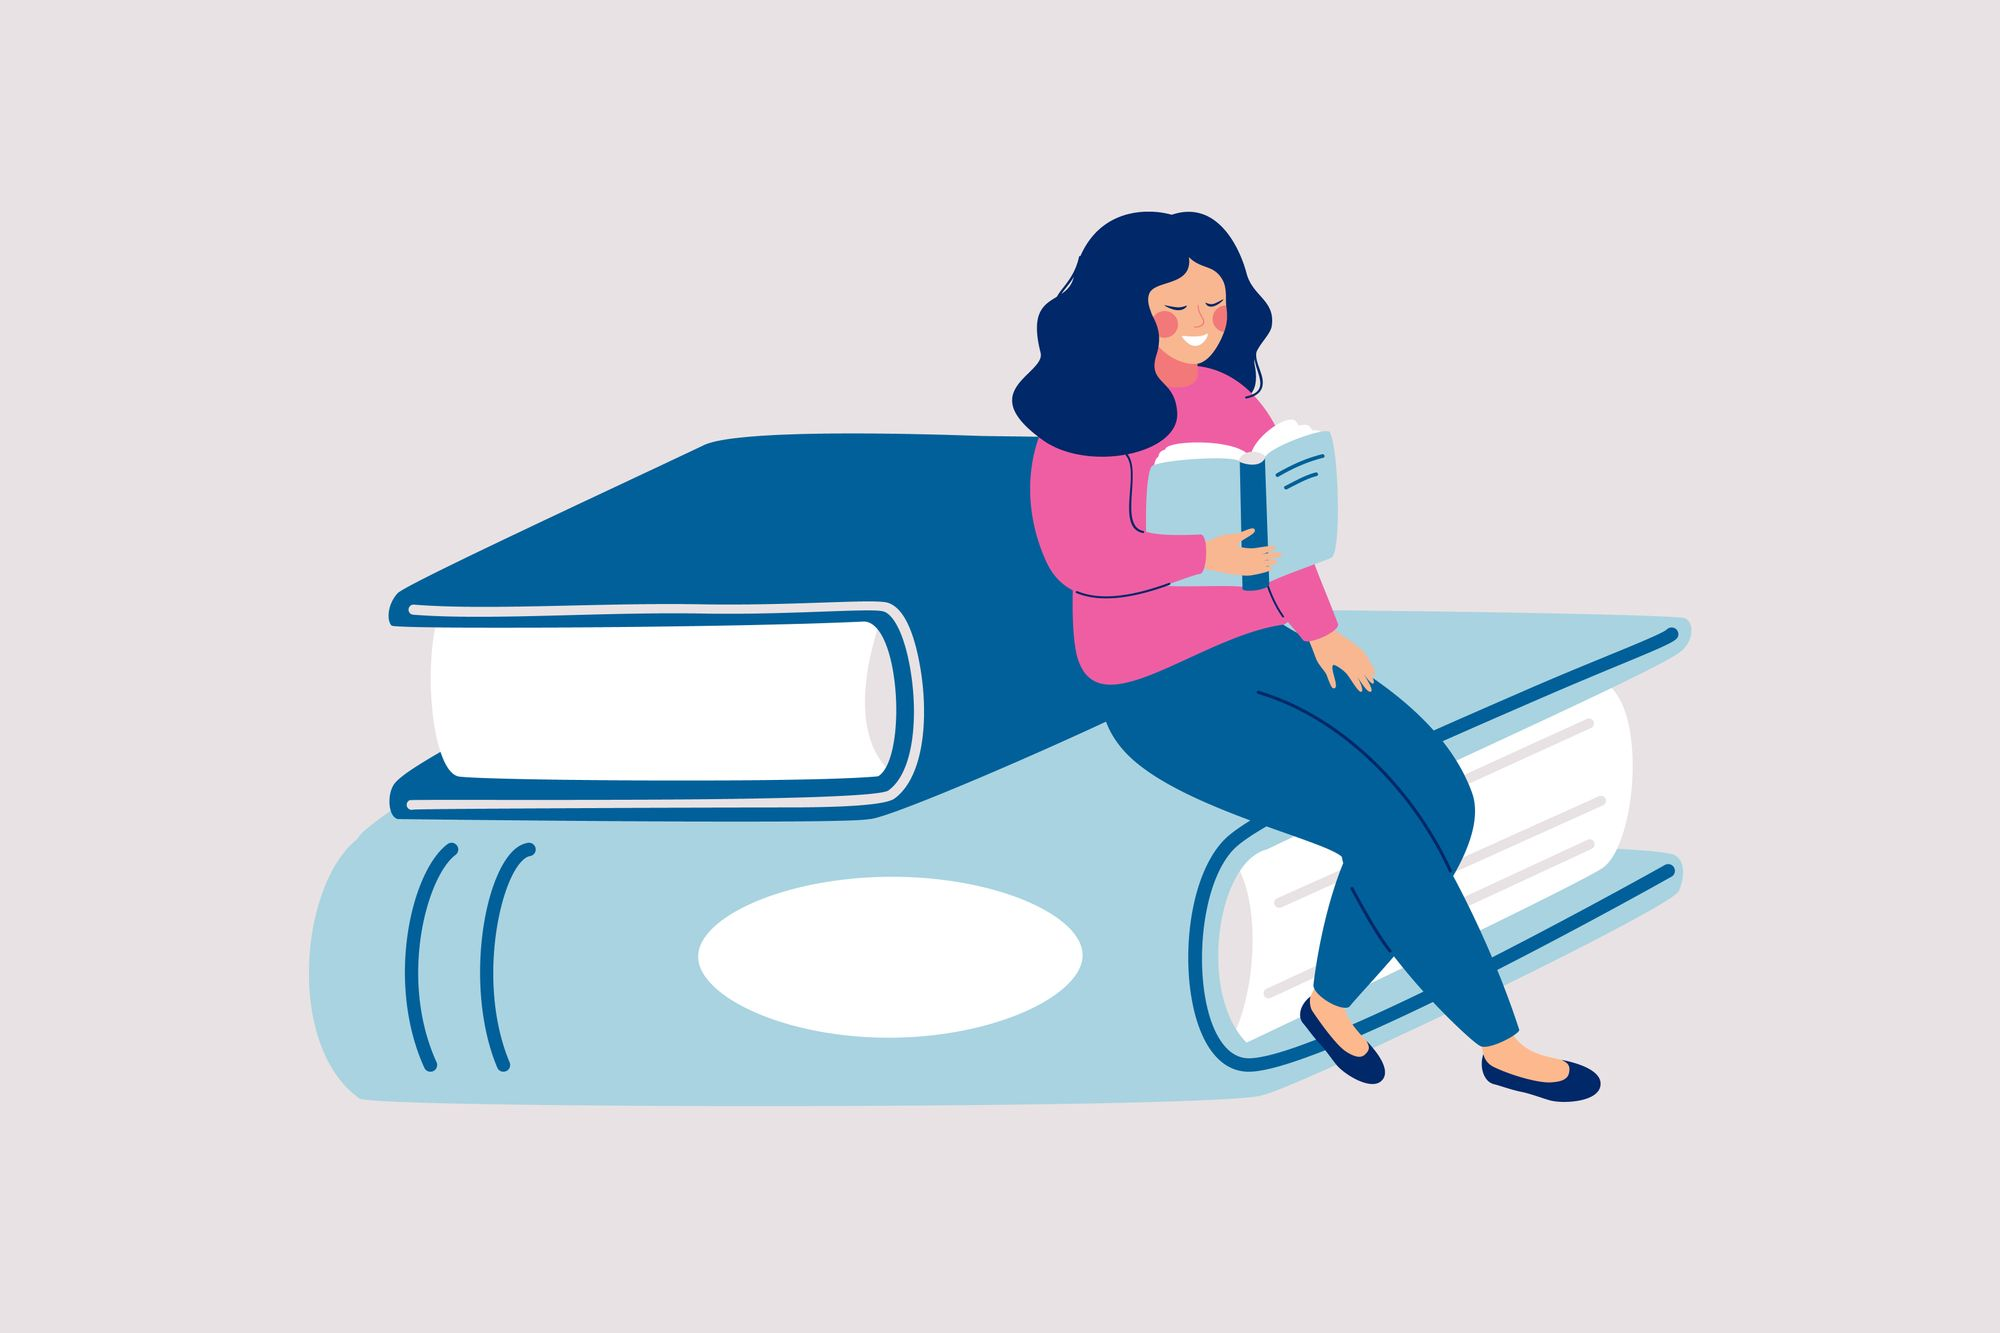 Illustration of a blue haired woman reading a book, sitting on top of books